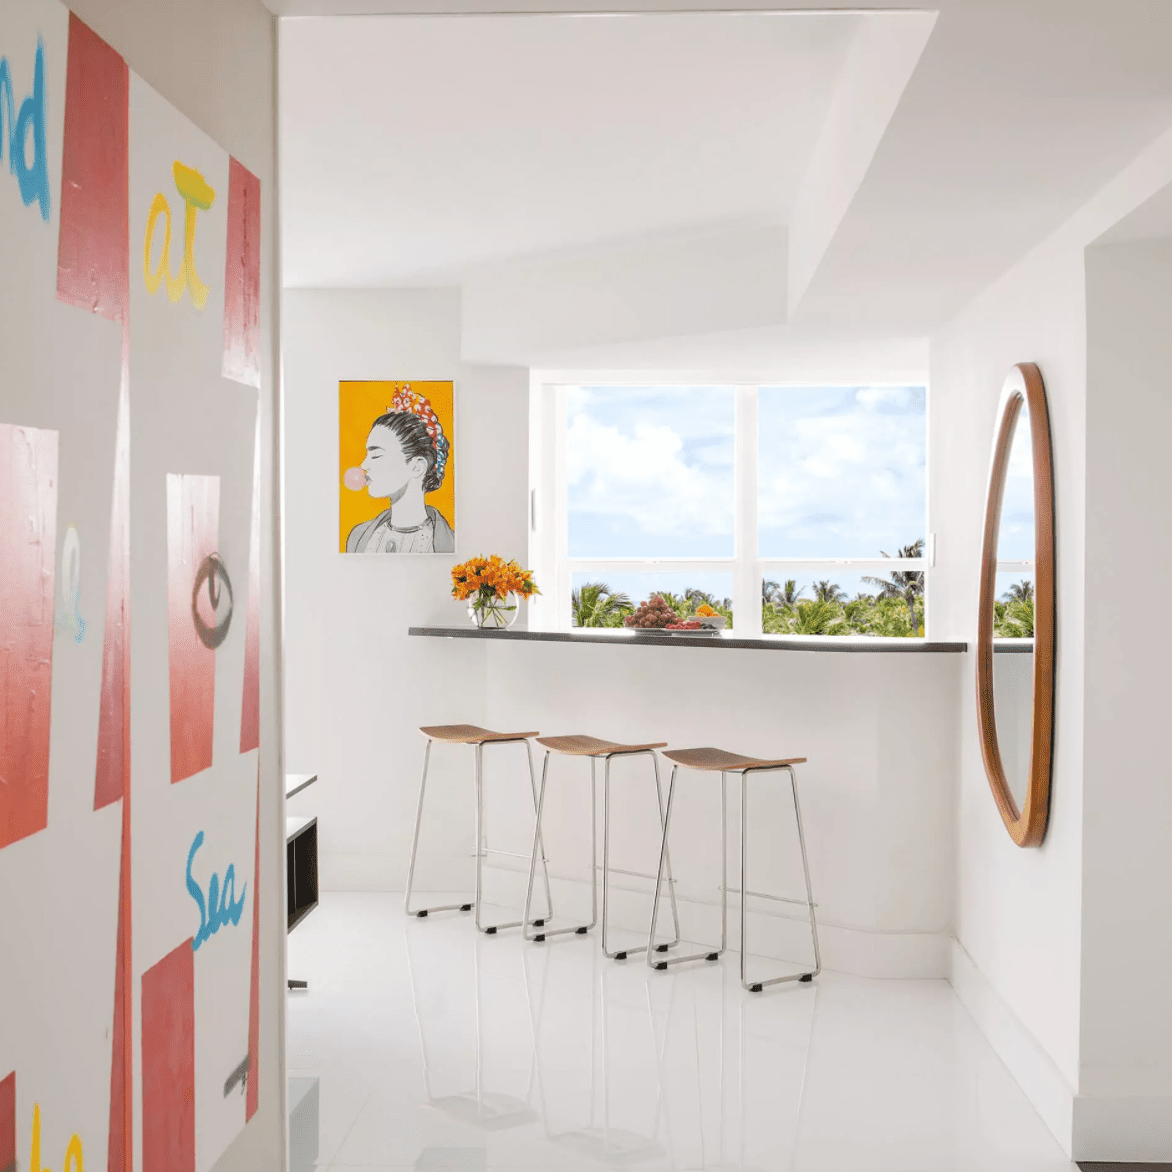 A hallway leading into an all-white kitchen, with several walls lined with modern art